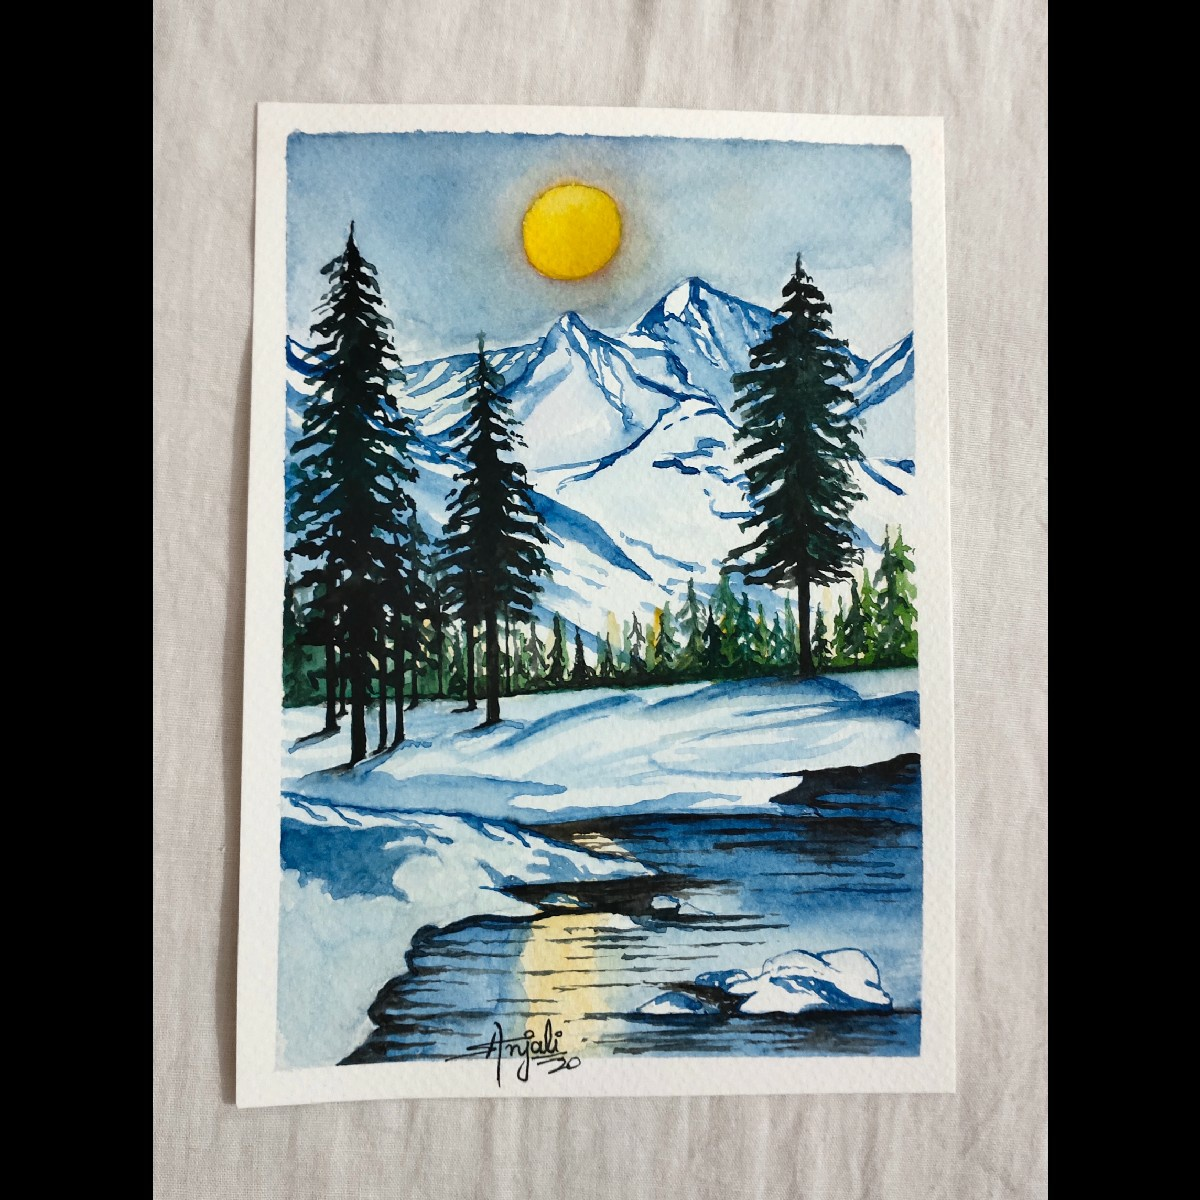 Sample Images for All about winter ❄ - Art Challenge